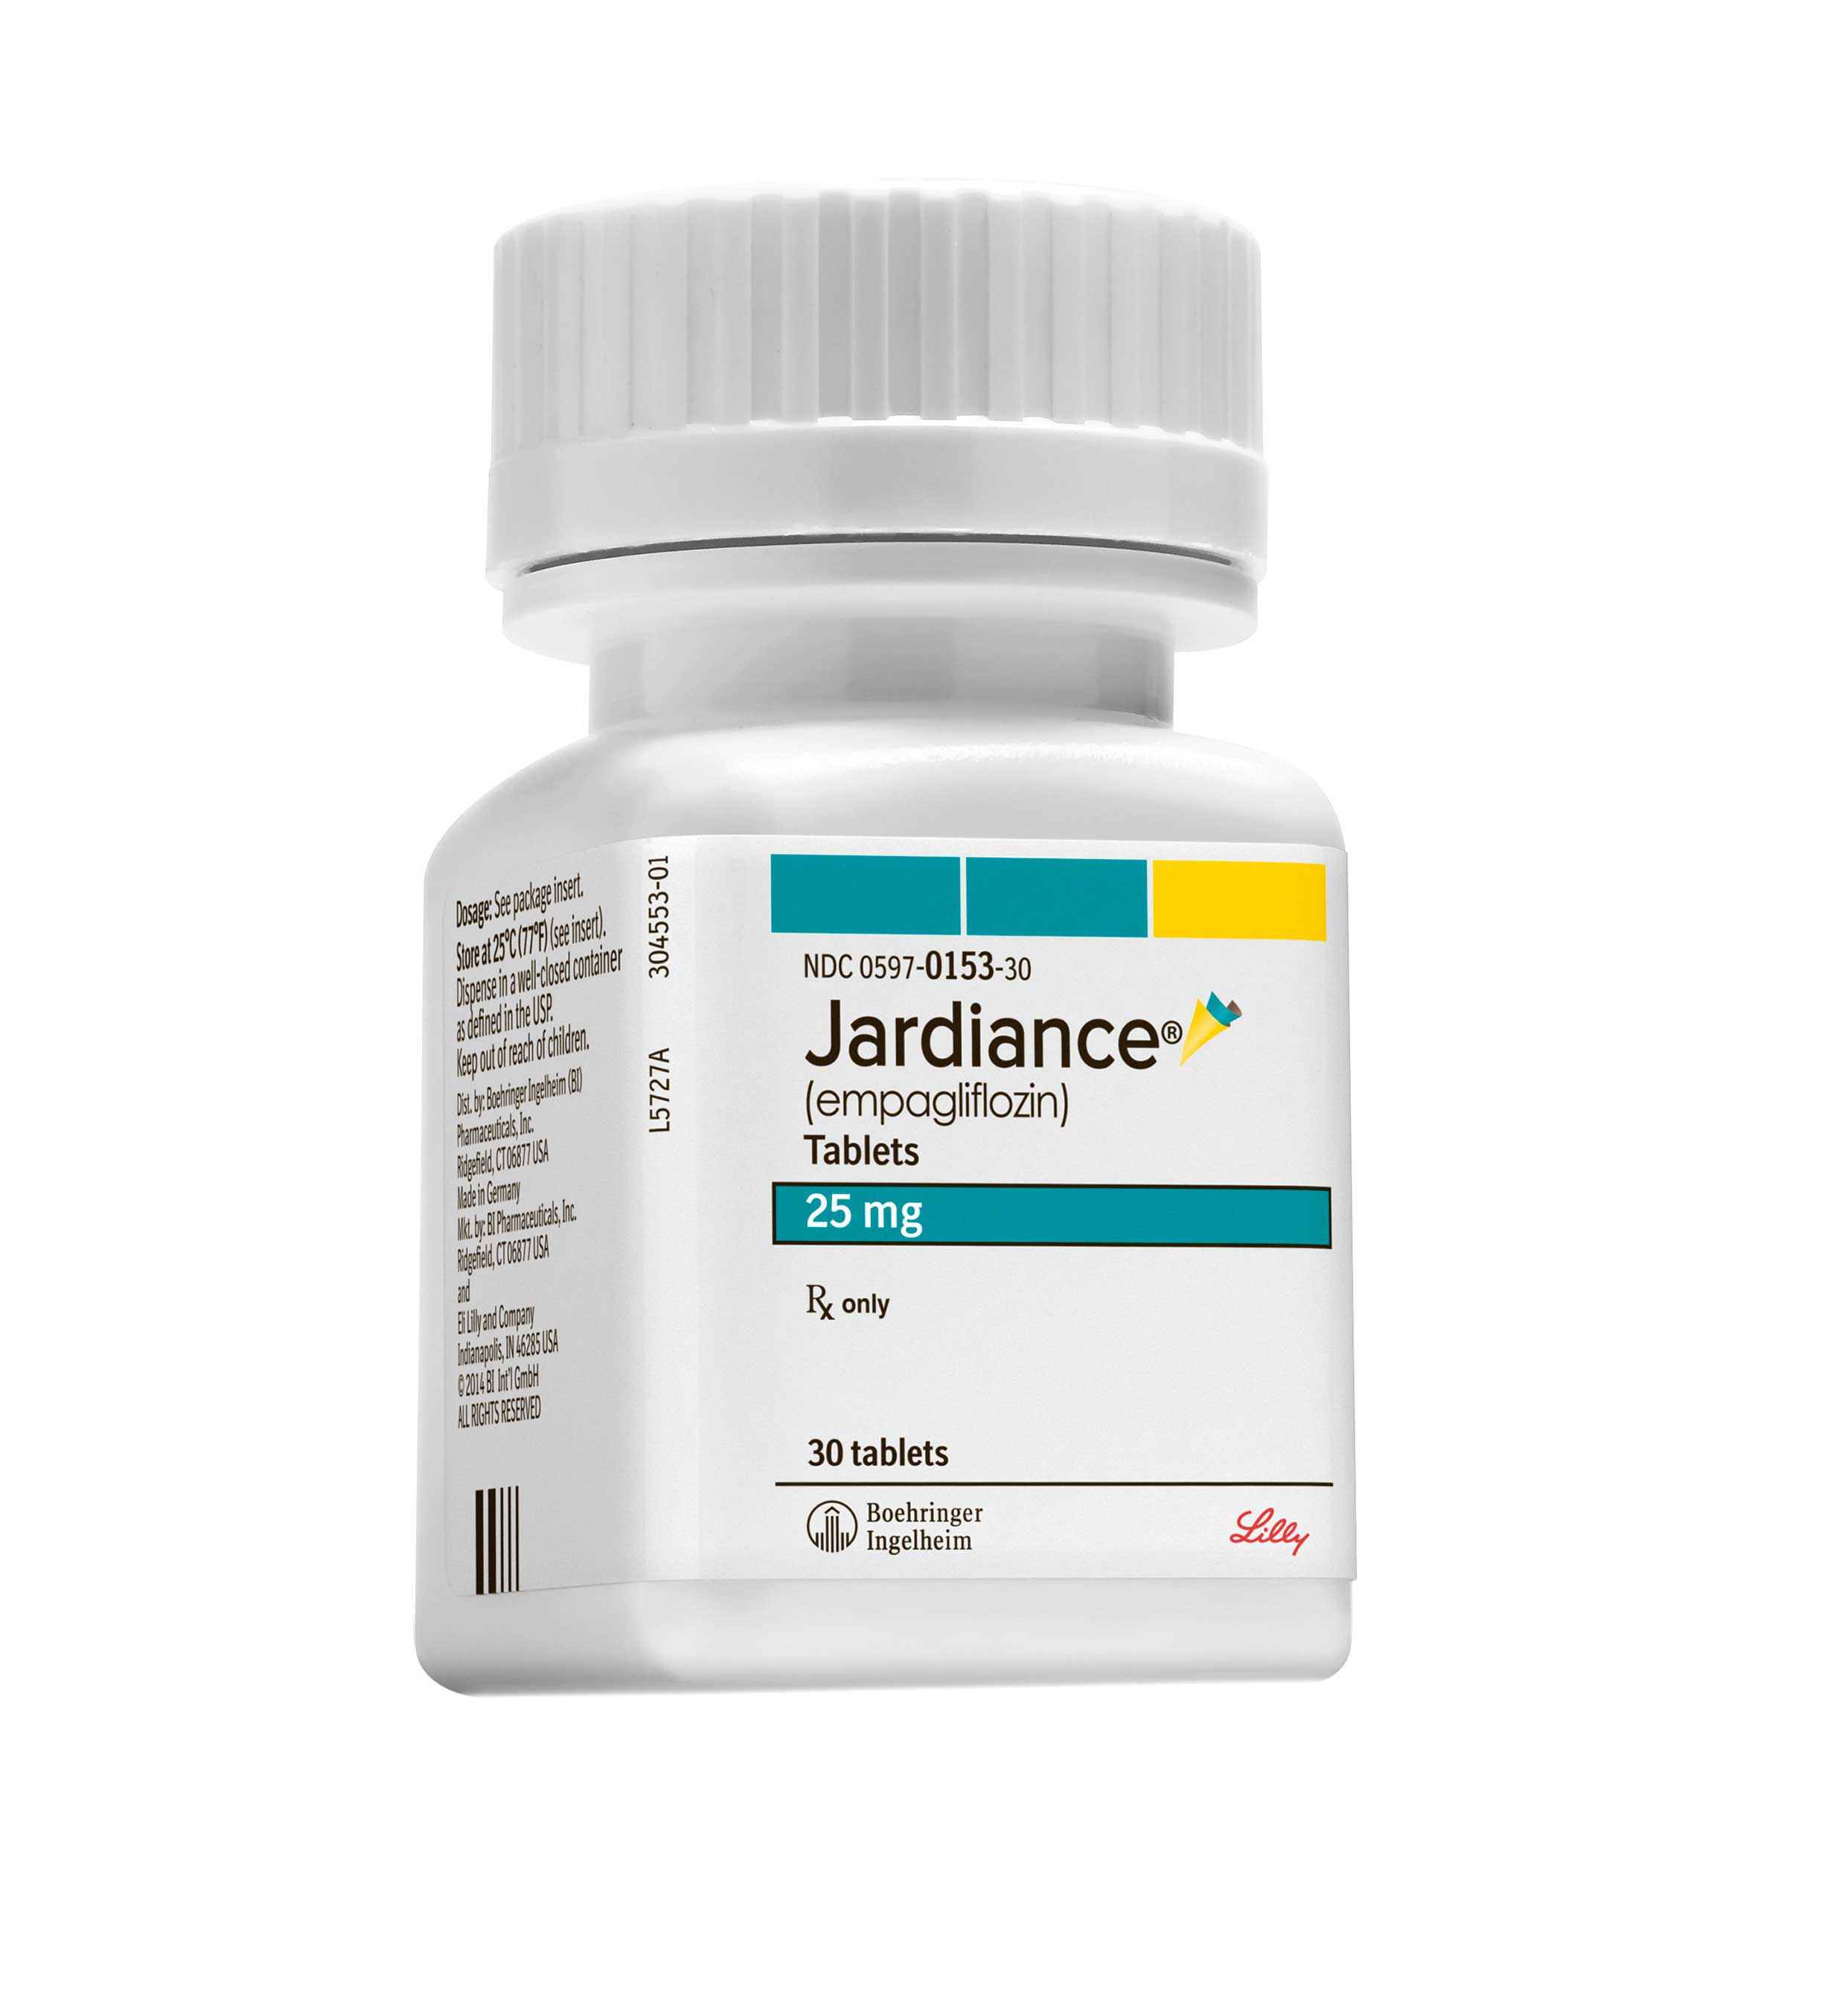 u s  fda approves jardiance u00ae  empagliflozin  tablets to reduce the risk of cardiovascular death